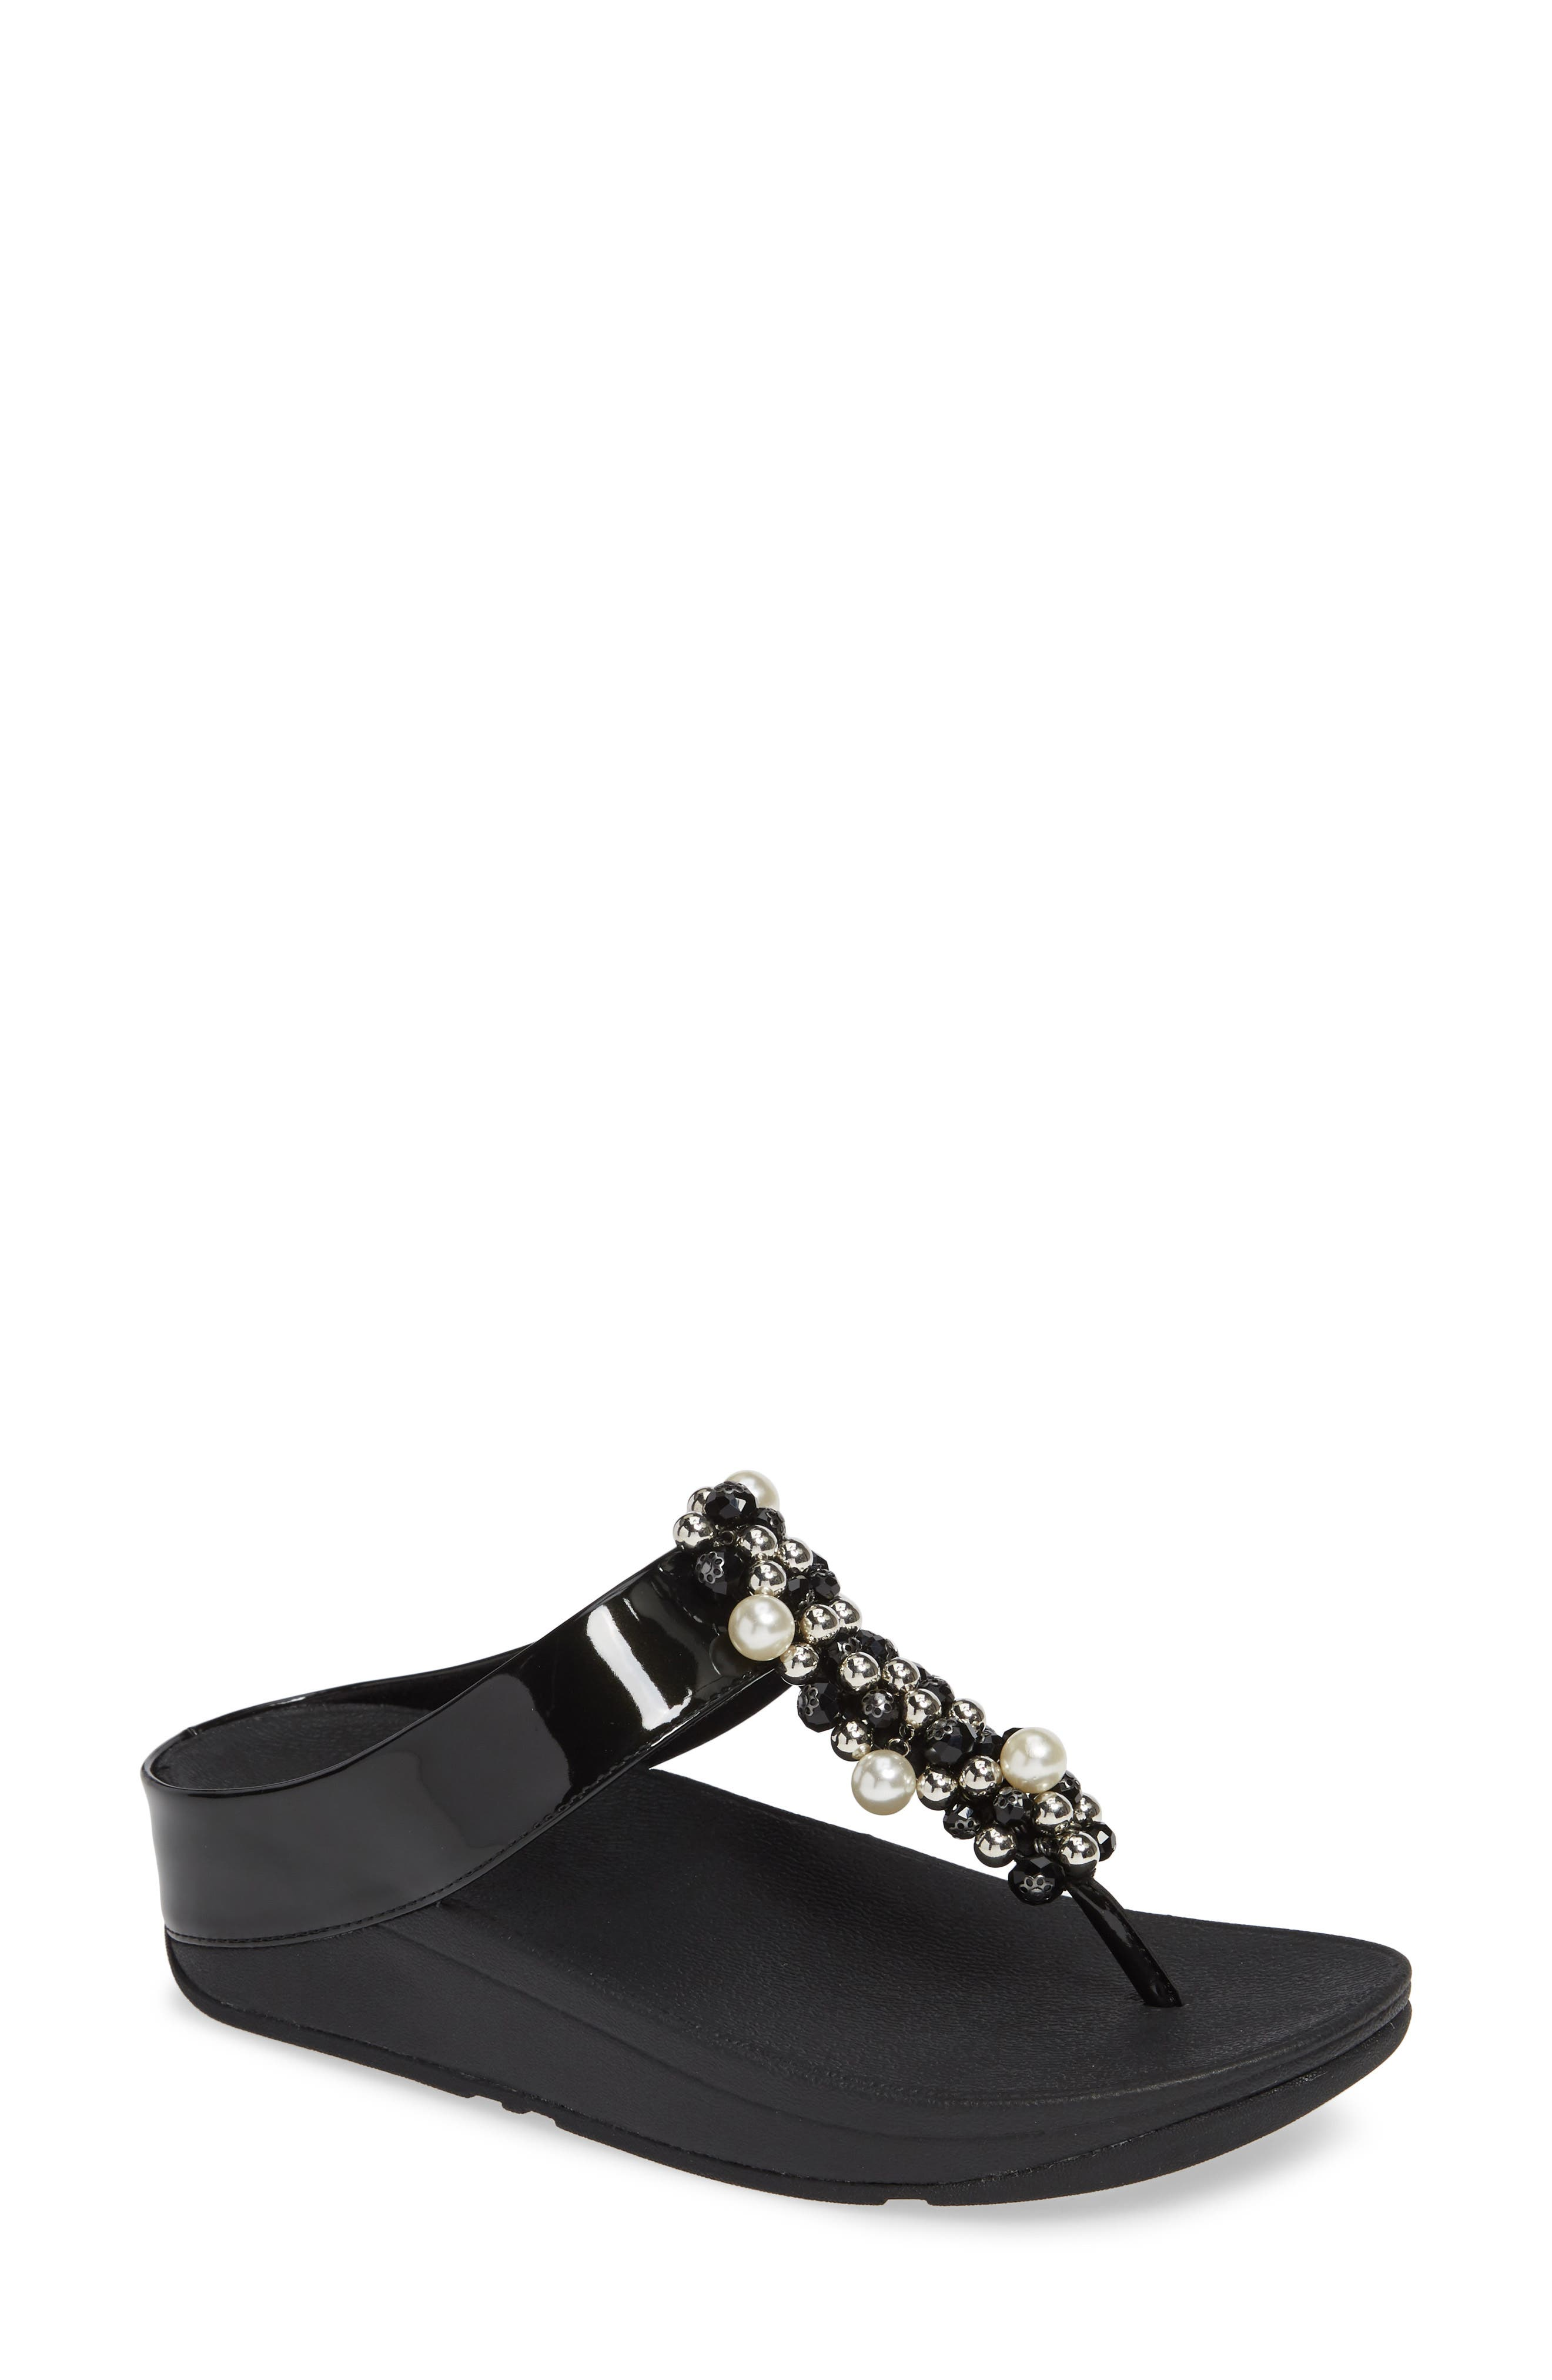 FITFLOP, Deco Embellished Flip Flop, Main thumbnail 1, color, BLACK FABRIC